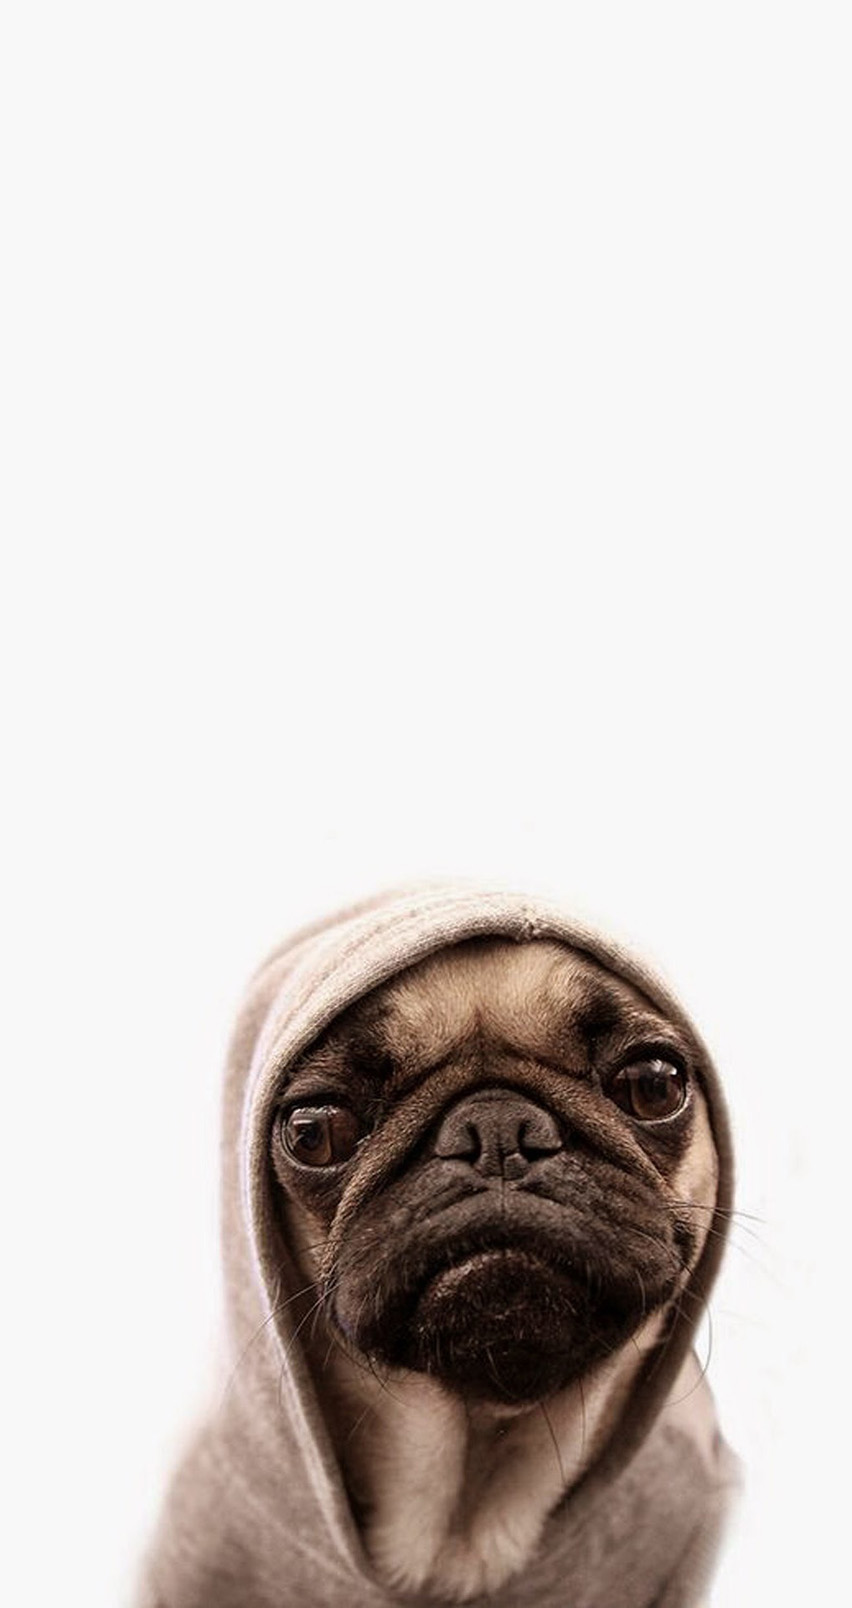 Cute-pug-Tap-for-more-Cute-Pug-Dog-HD-mobile-for-iPhone-s-and-iPhone-wallpaper-wp6002866